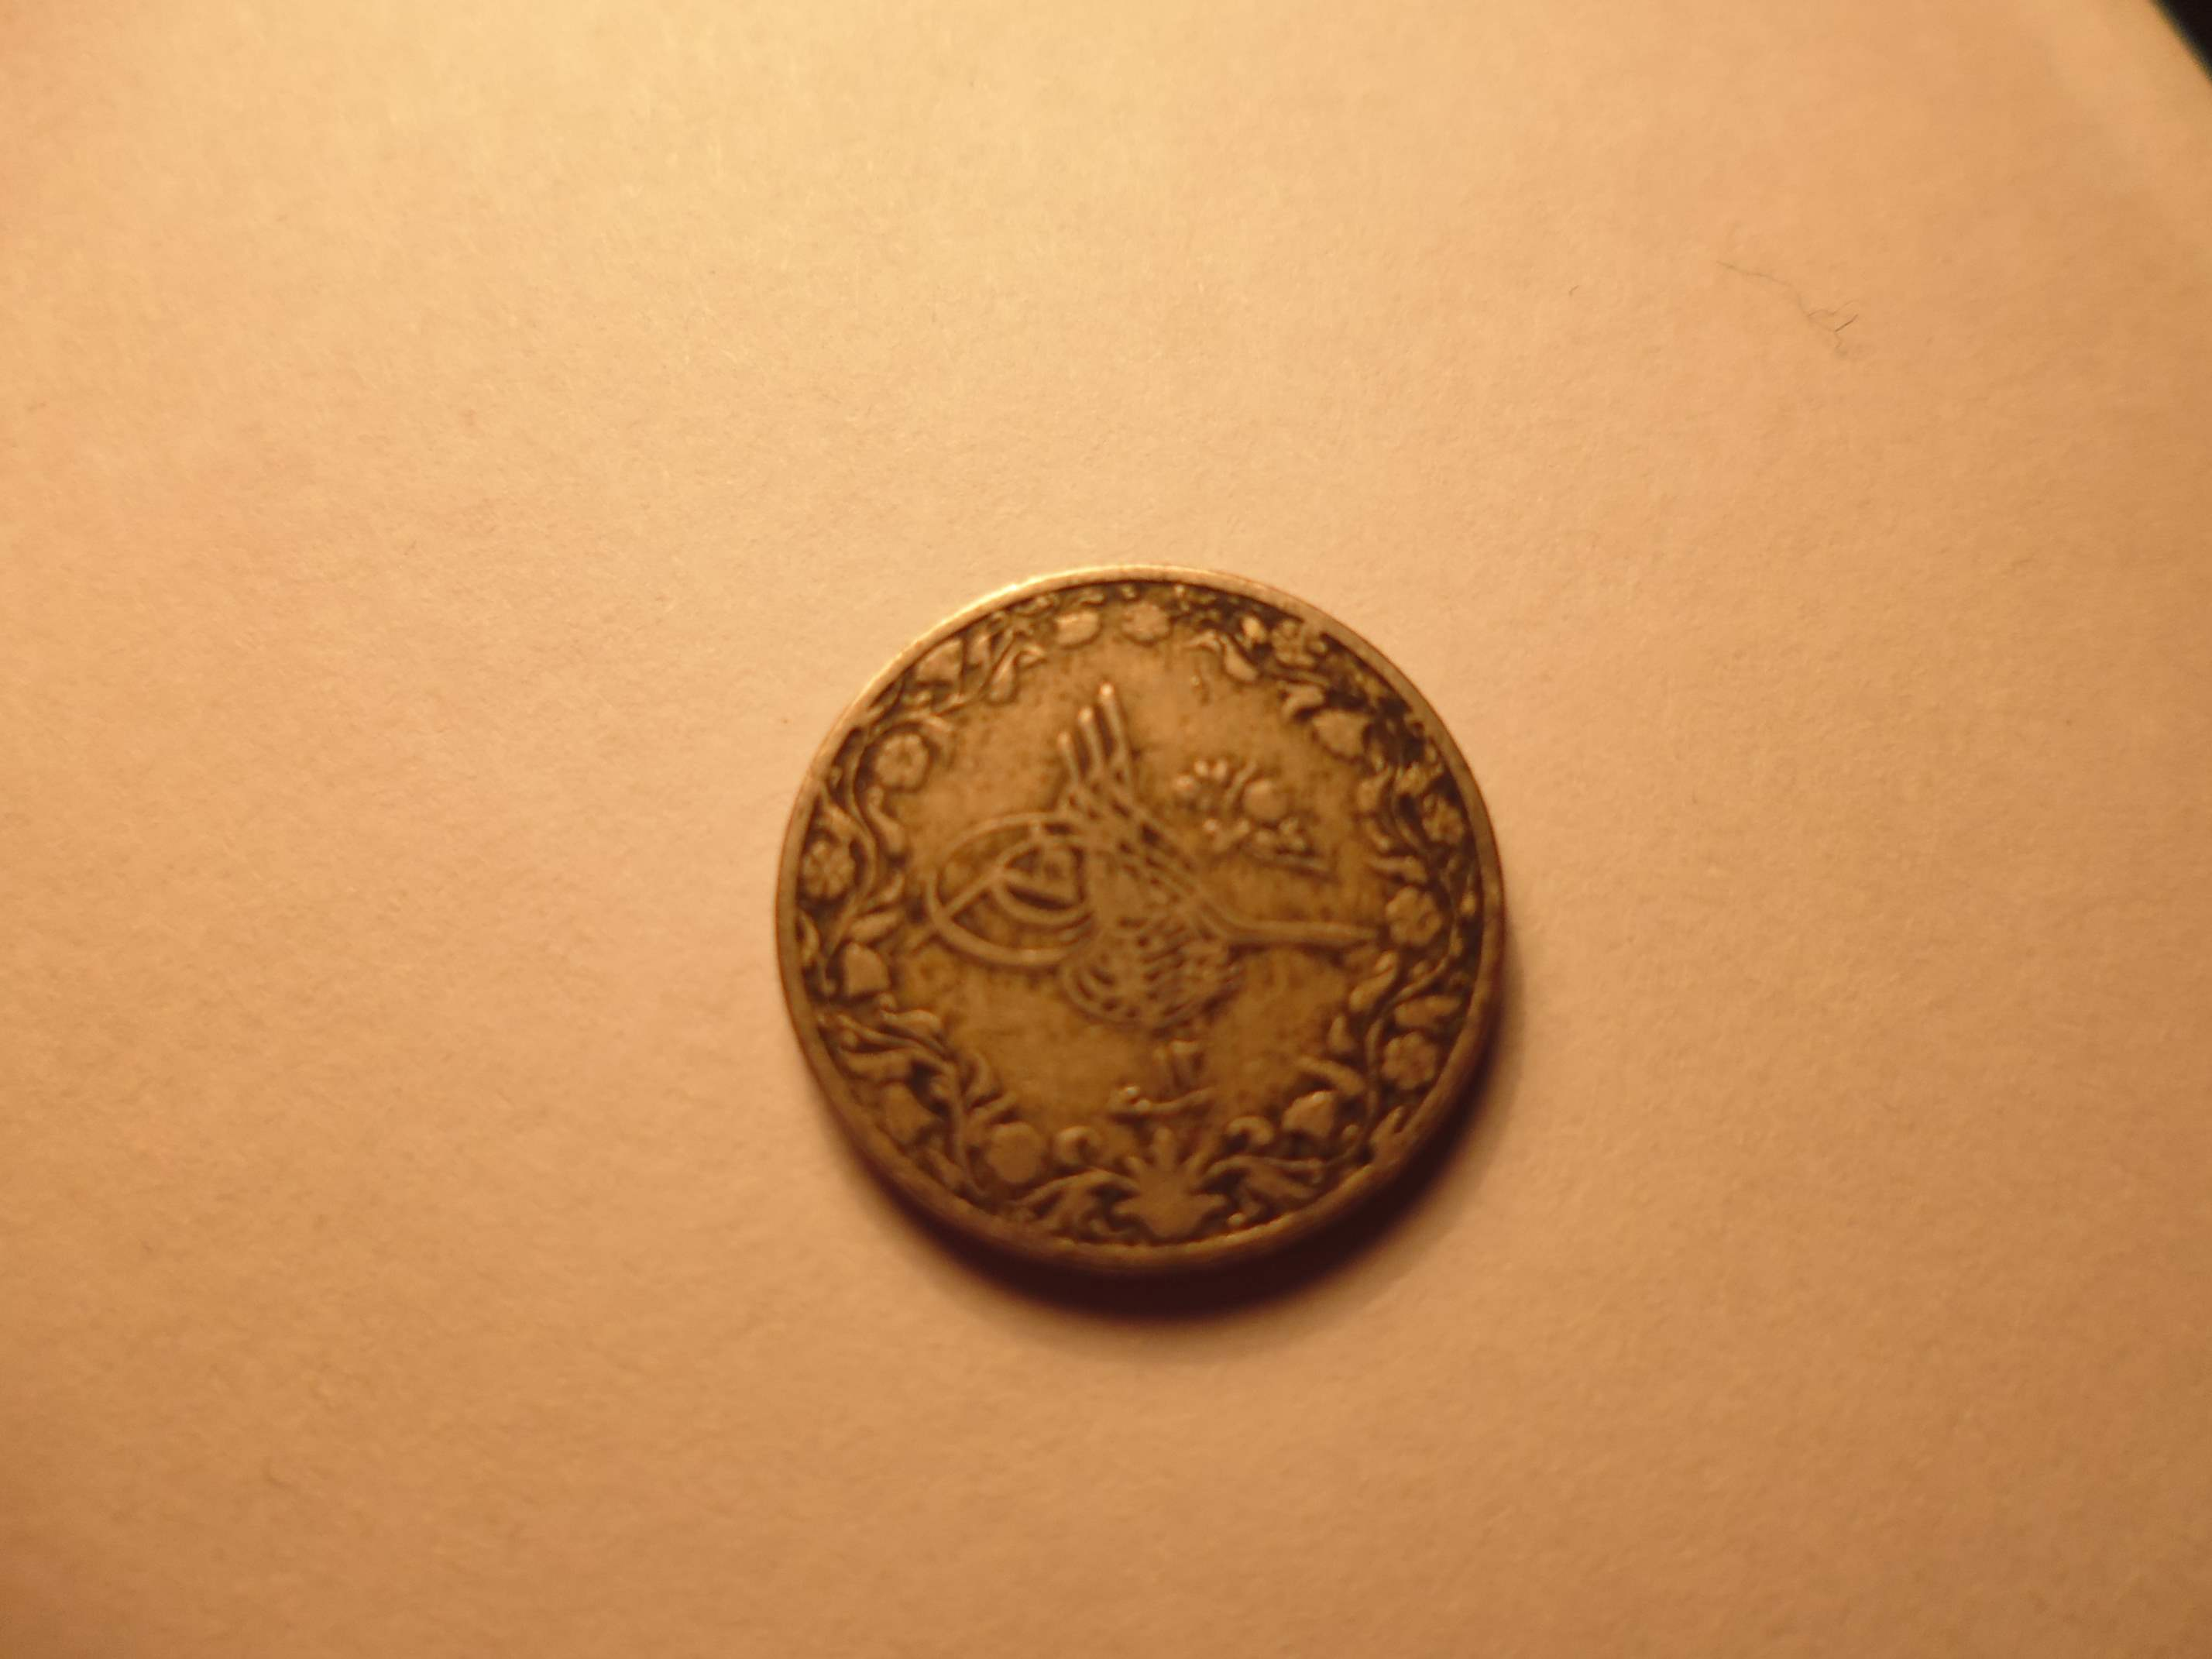 Coin from Tunis and Ottoman - ID and dating needed Numista